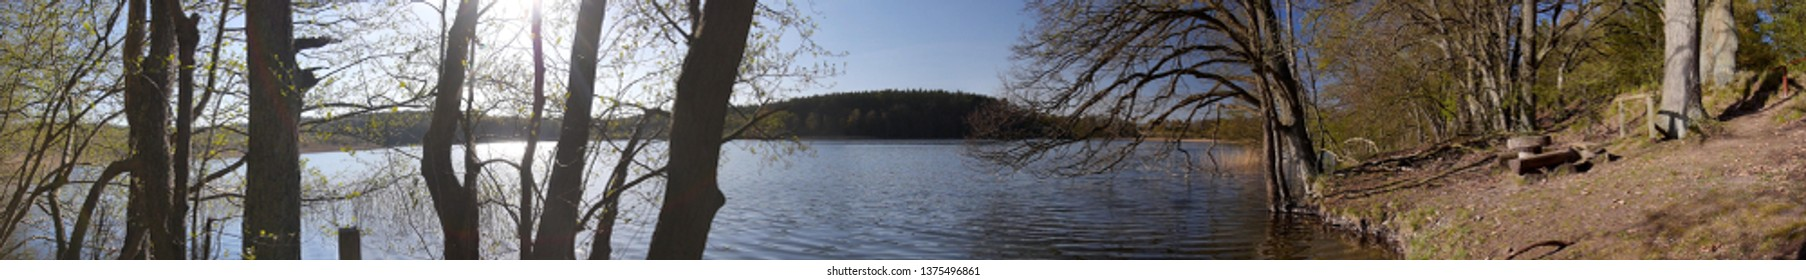 Panorama view of a bathing place at the water shore of a glacial lake in Mecklenburg-Western Pomerania with a picnic seat and surrounded by the forest